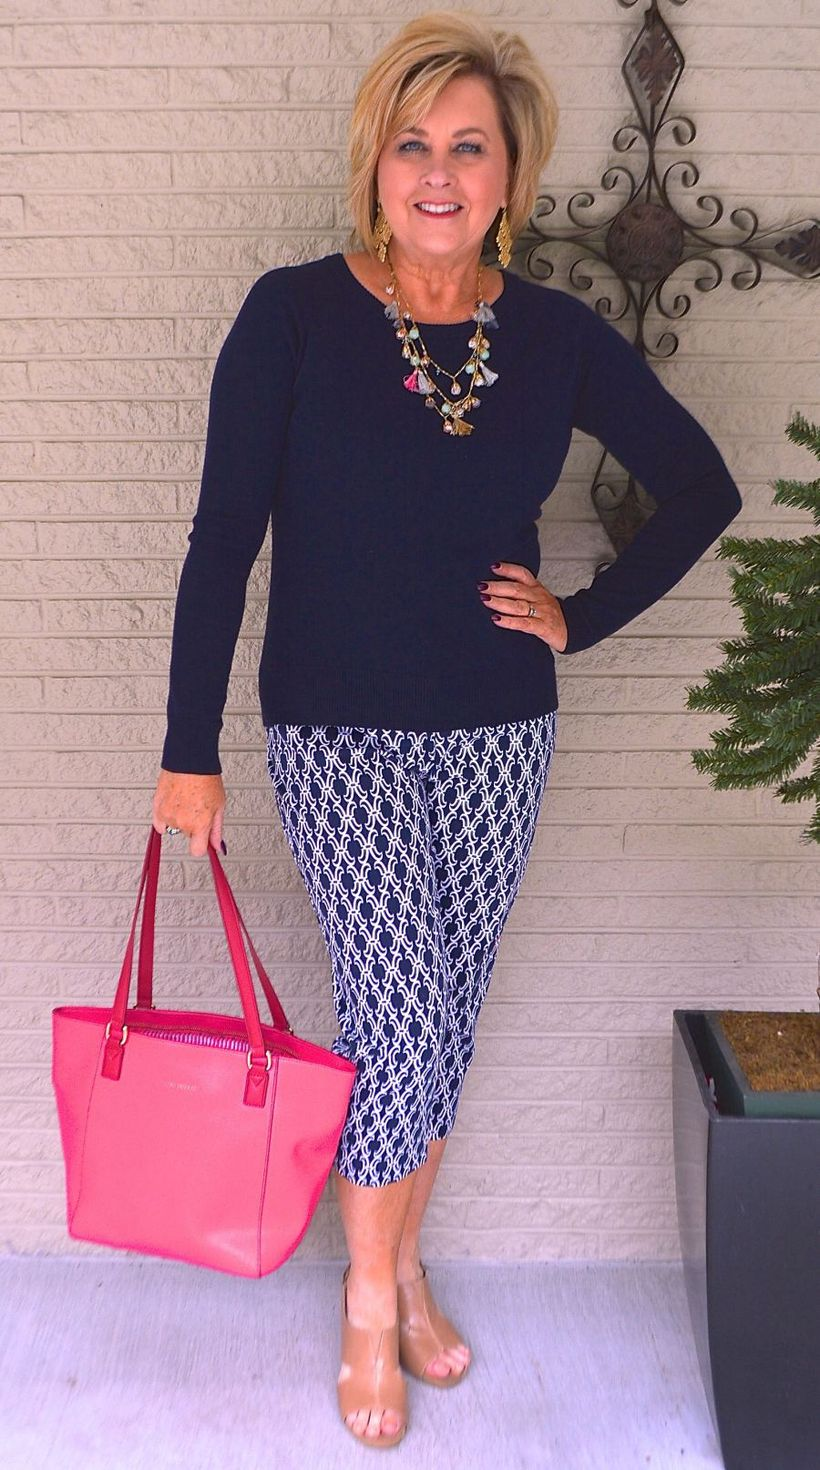 Fashionable over 50 fall outfits ideas 97 - Fashion Best